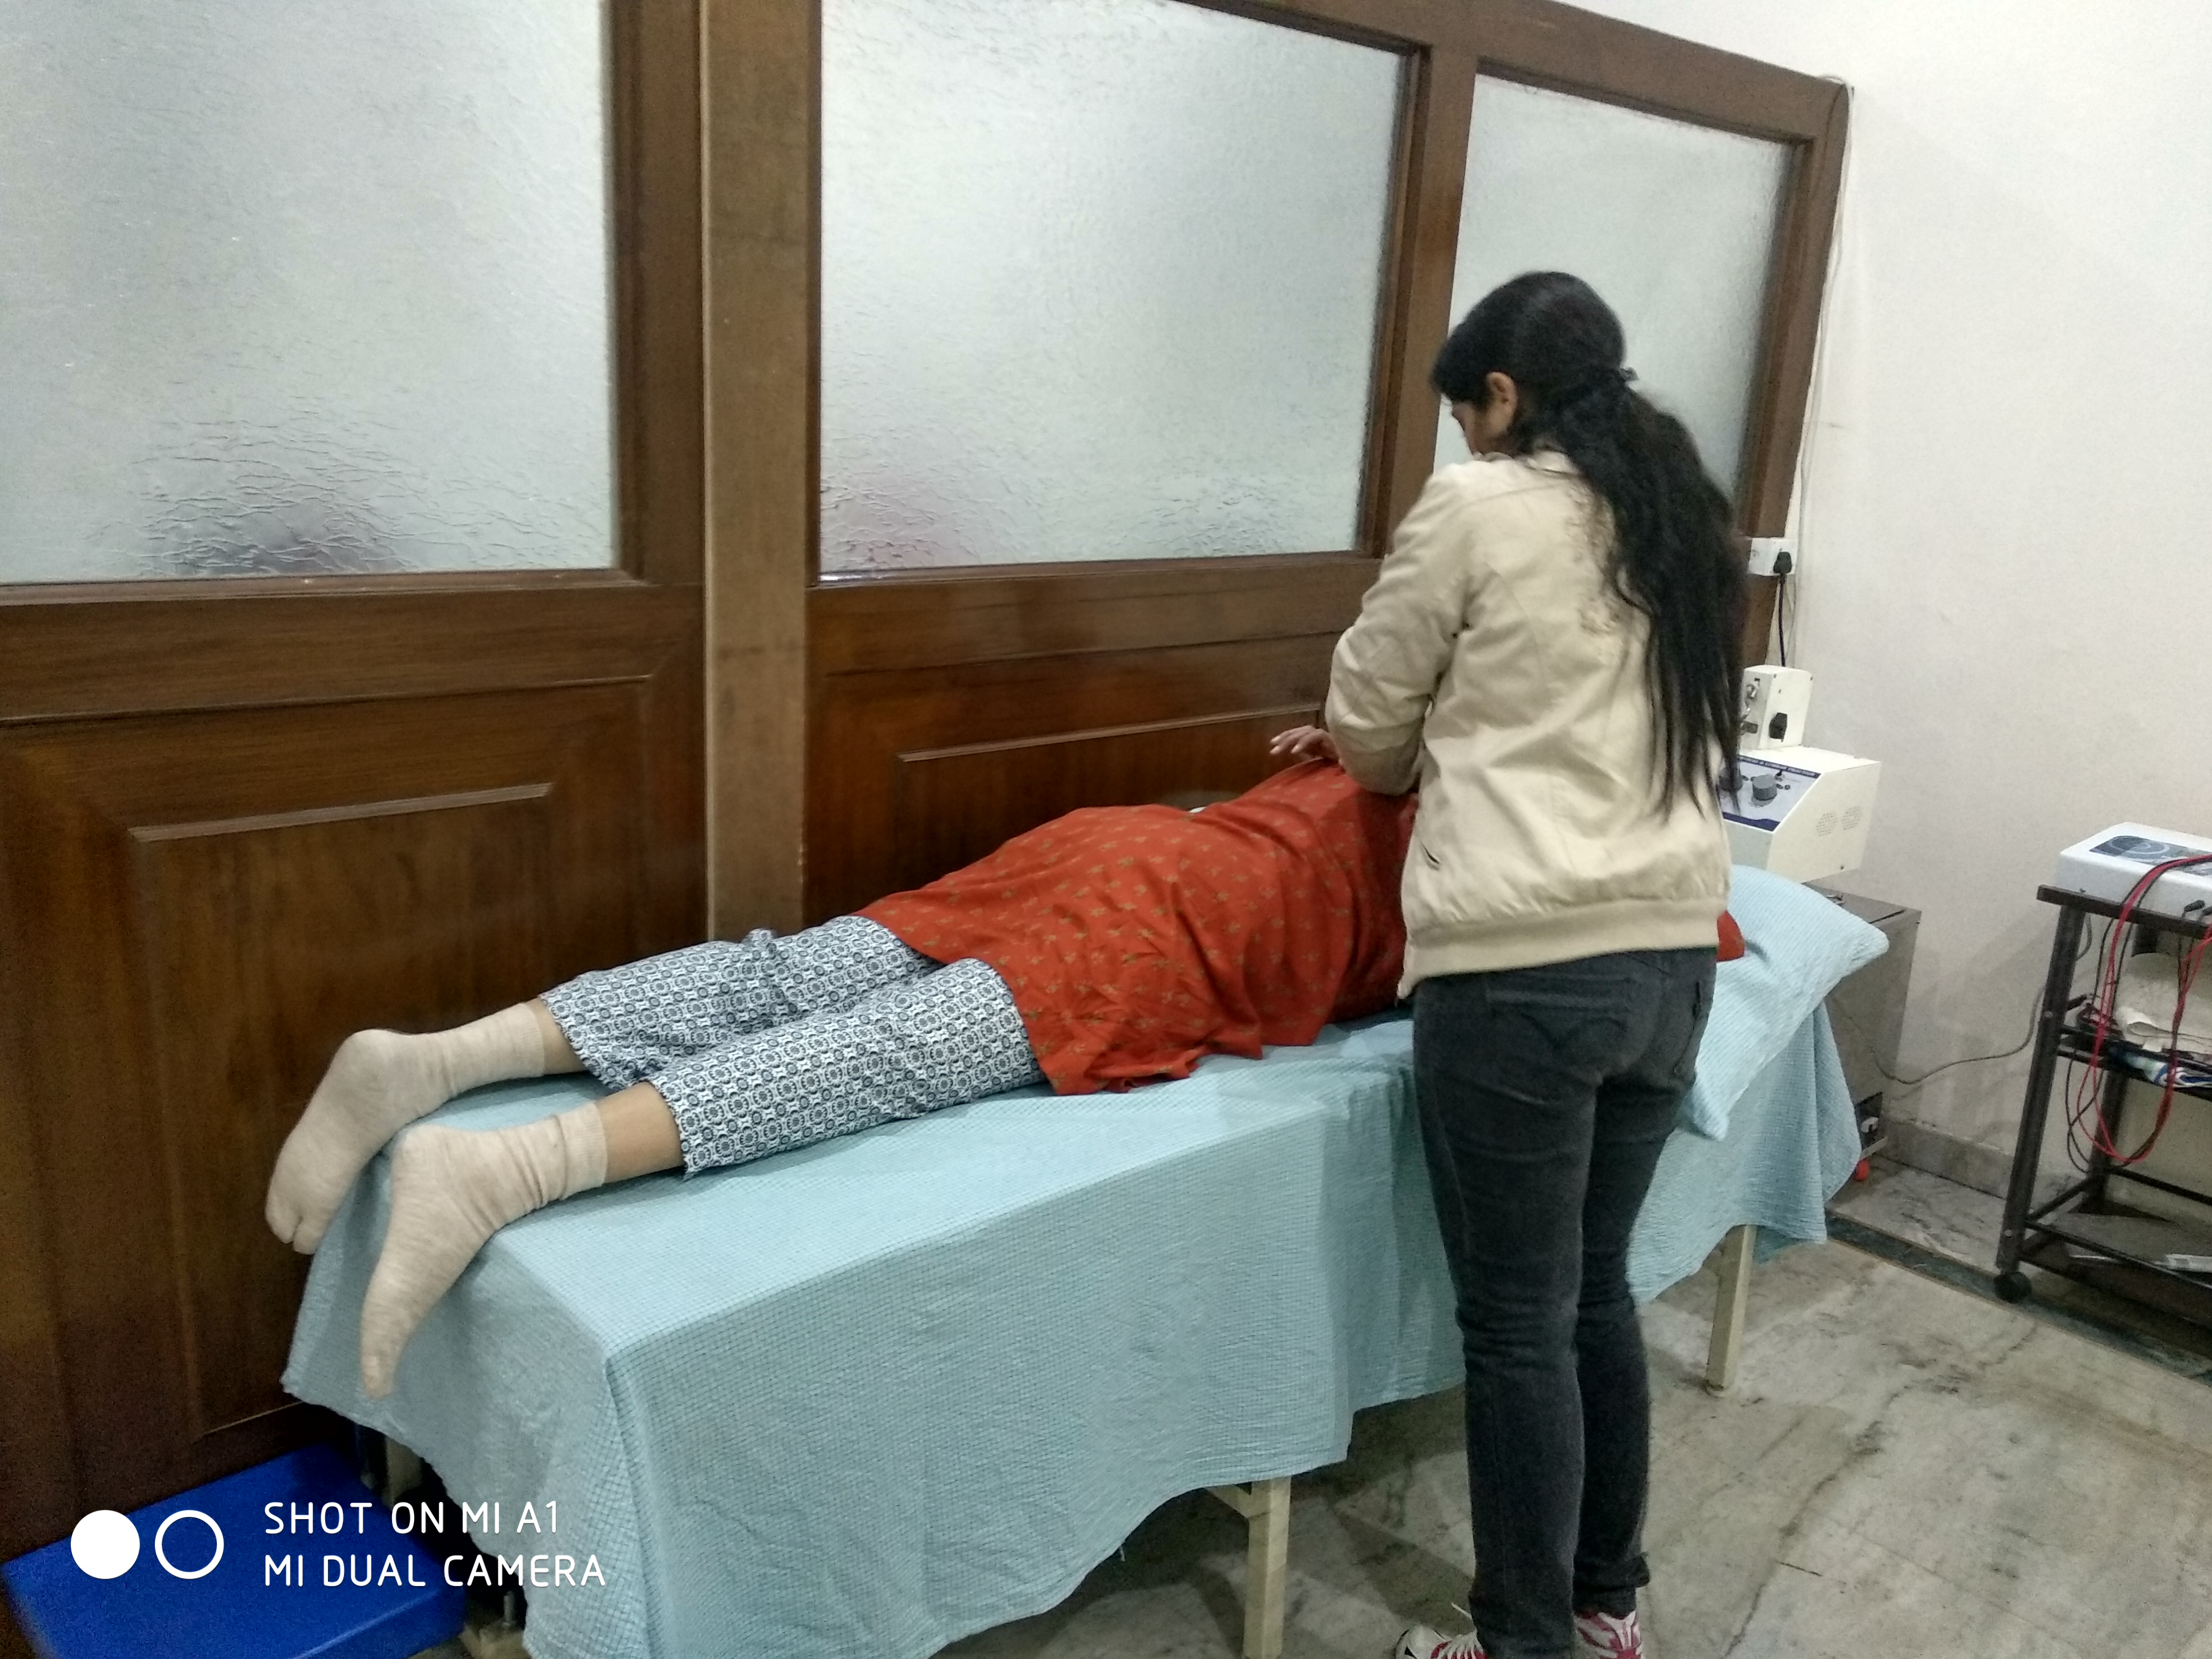 Rid of pain physiotherapy and Rehabilitation clinic | Lybrate.com